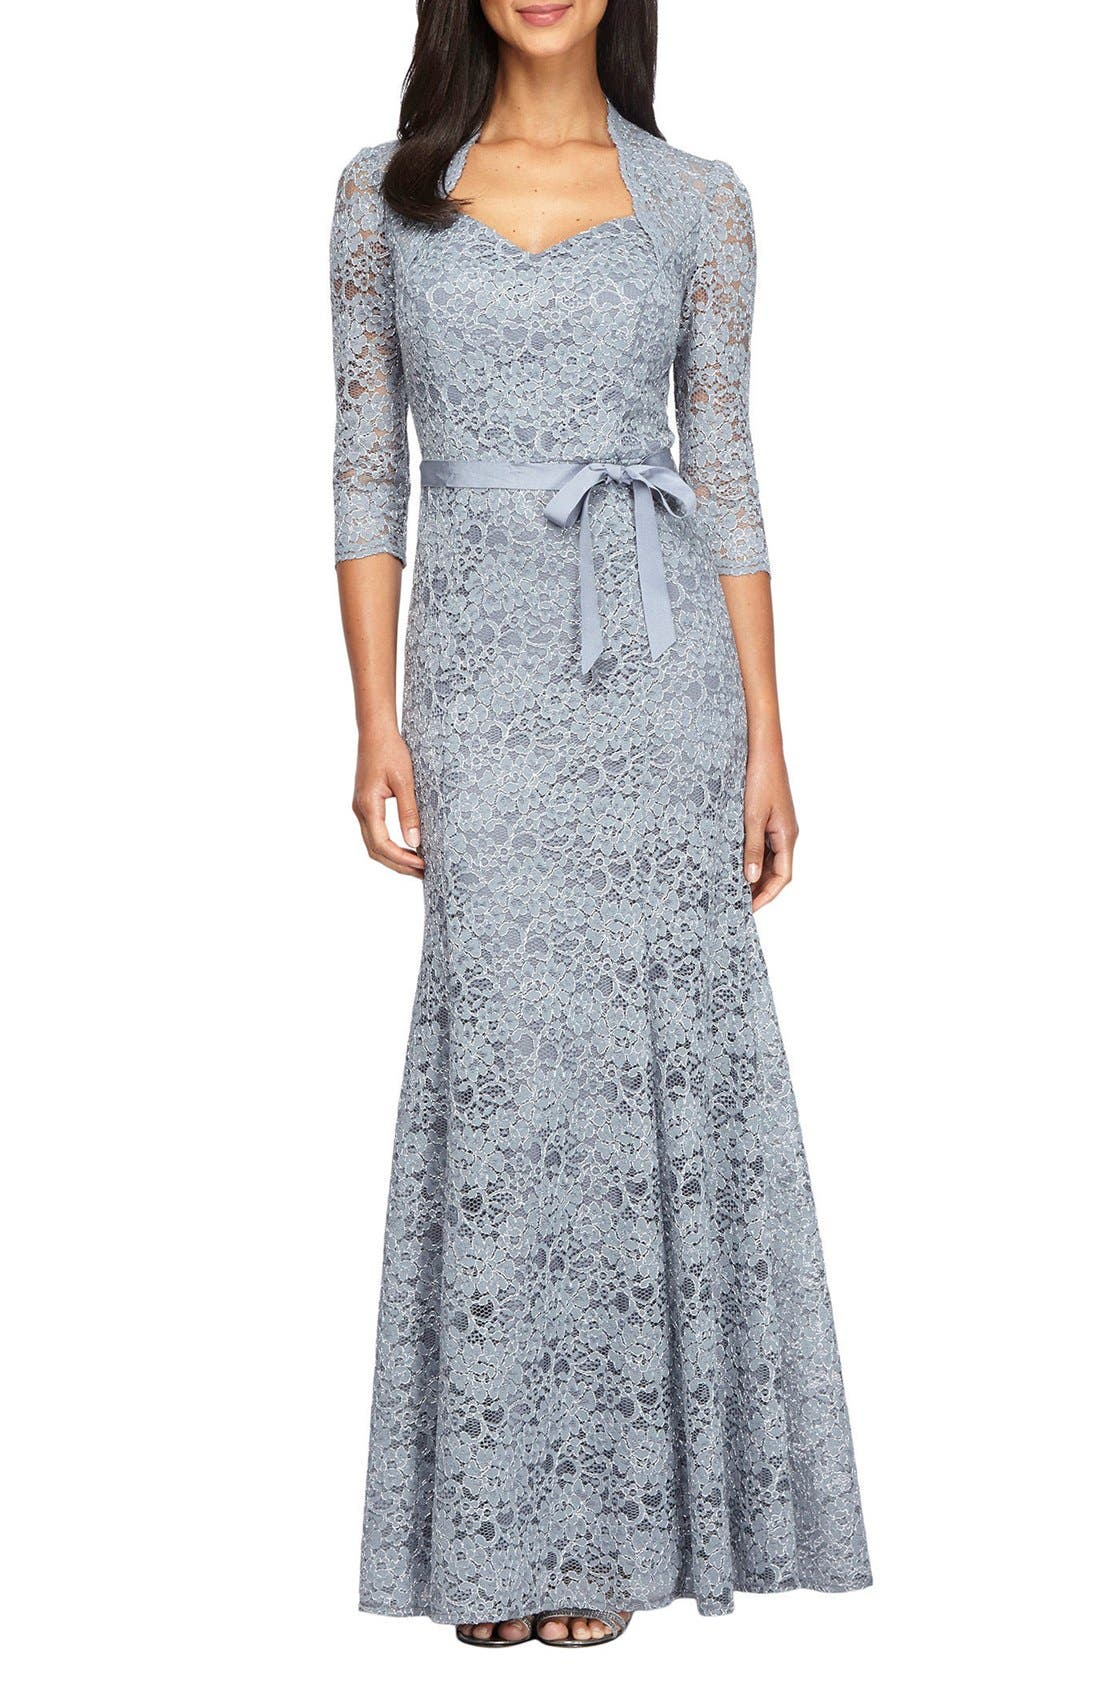 Main Image - Alex Evenings Metallic Lace Fit & Flare Gown (Regular & Petite)